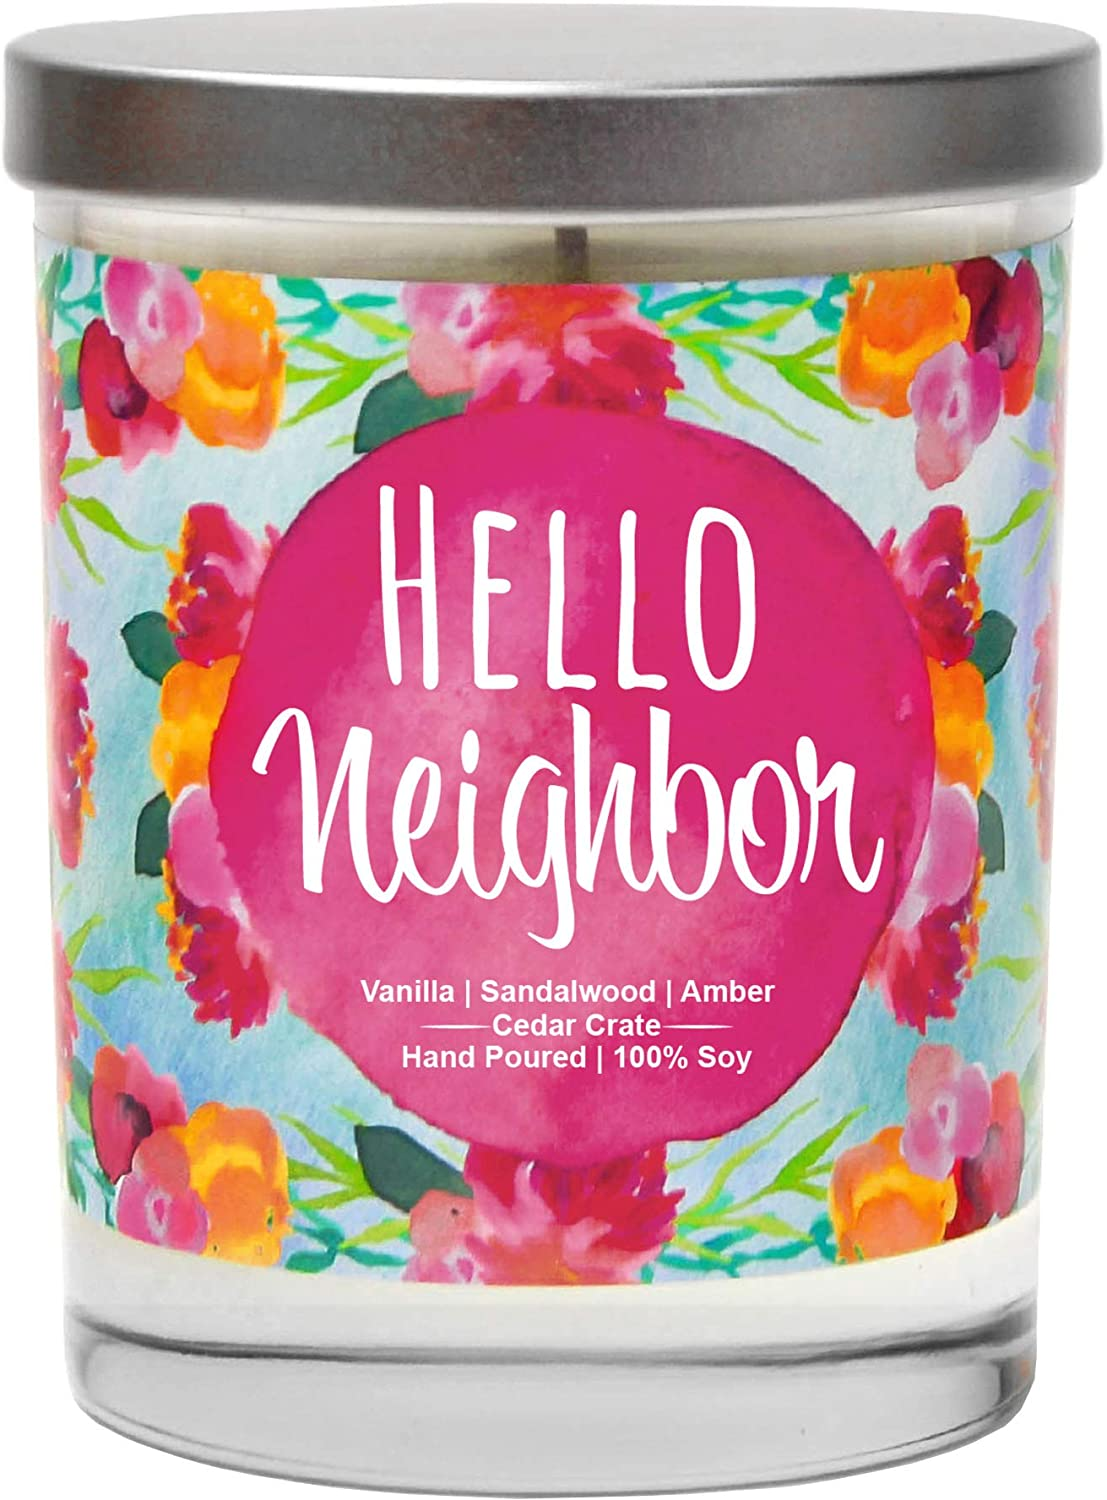 Hello Neighbor, Vanilla, Sandalwood, Amber, Scented Soy Candles,10 Oz. Jar Candle, Poured in USA, Decorative Aromatherapy, Housewarming Gifts for New Home